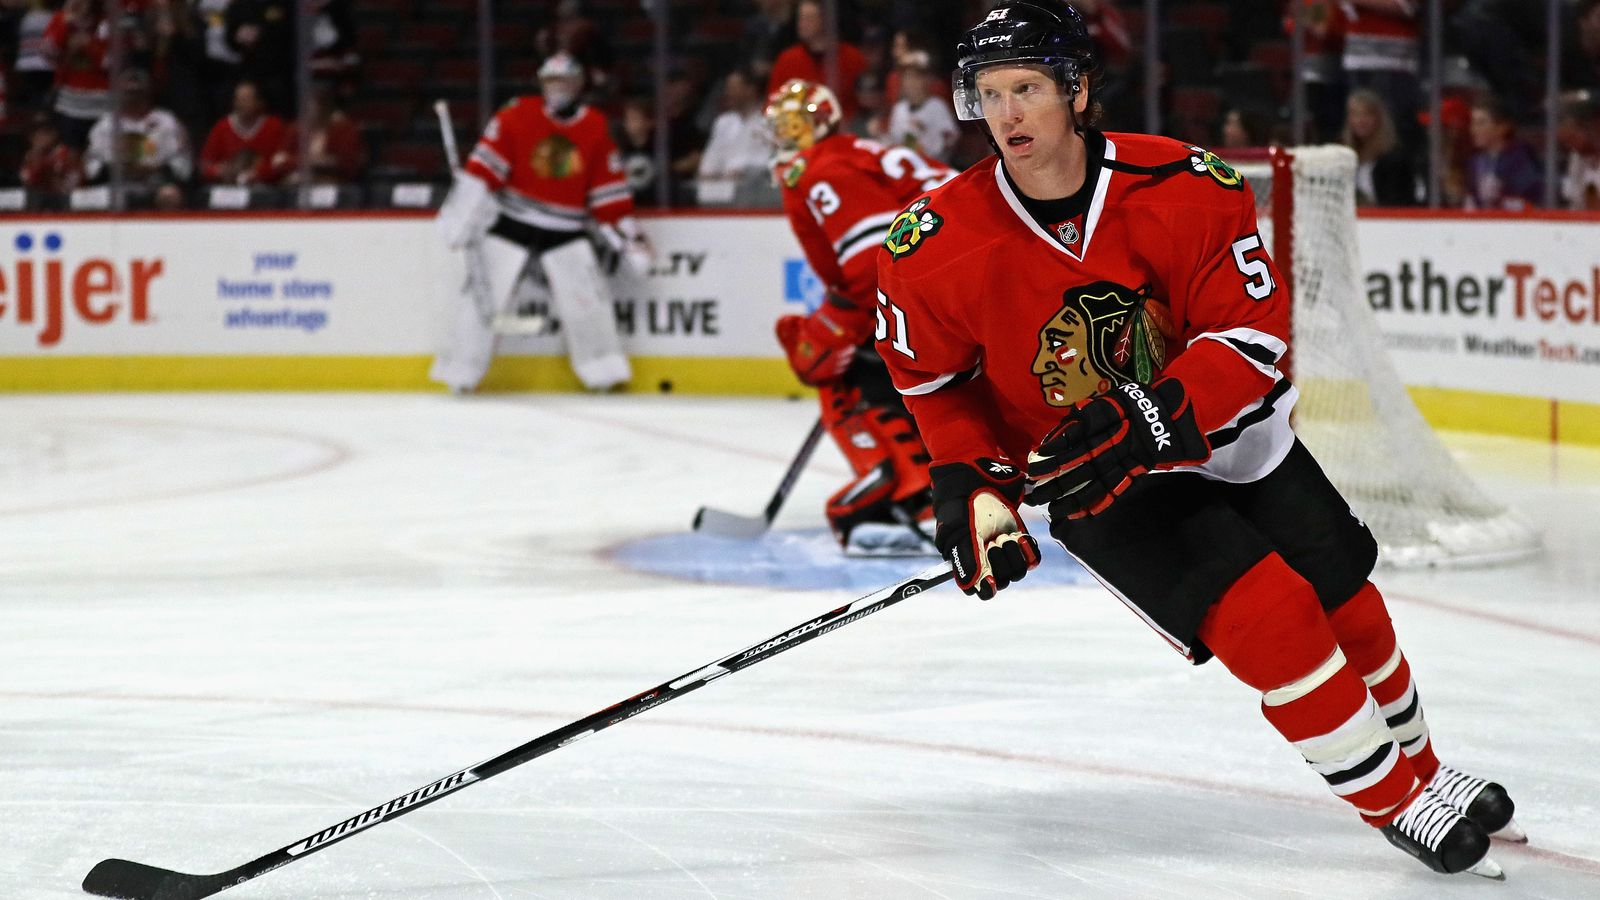 Brian Campbell is back in Chicago and he has an important role to fill